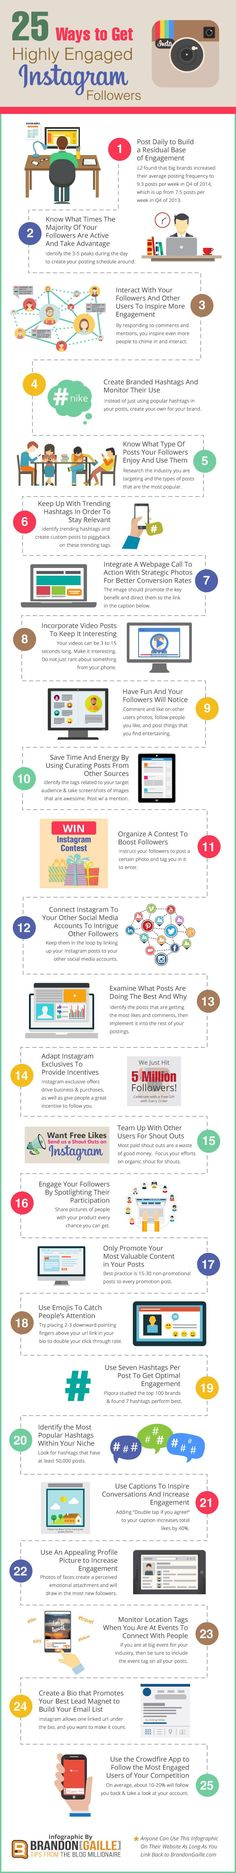 25 Ways to Get Highly Engaged Instagram Followers #infographic #Instagram #SocialMedia